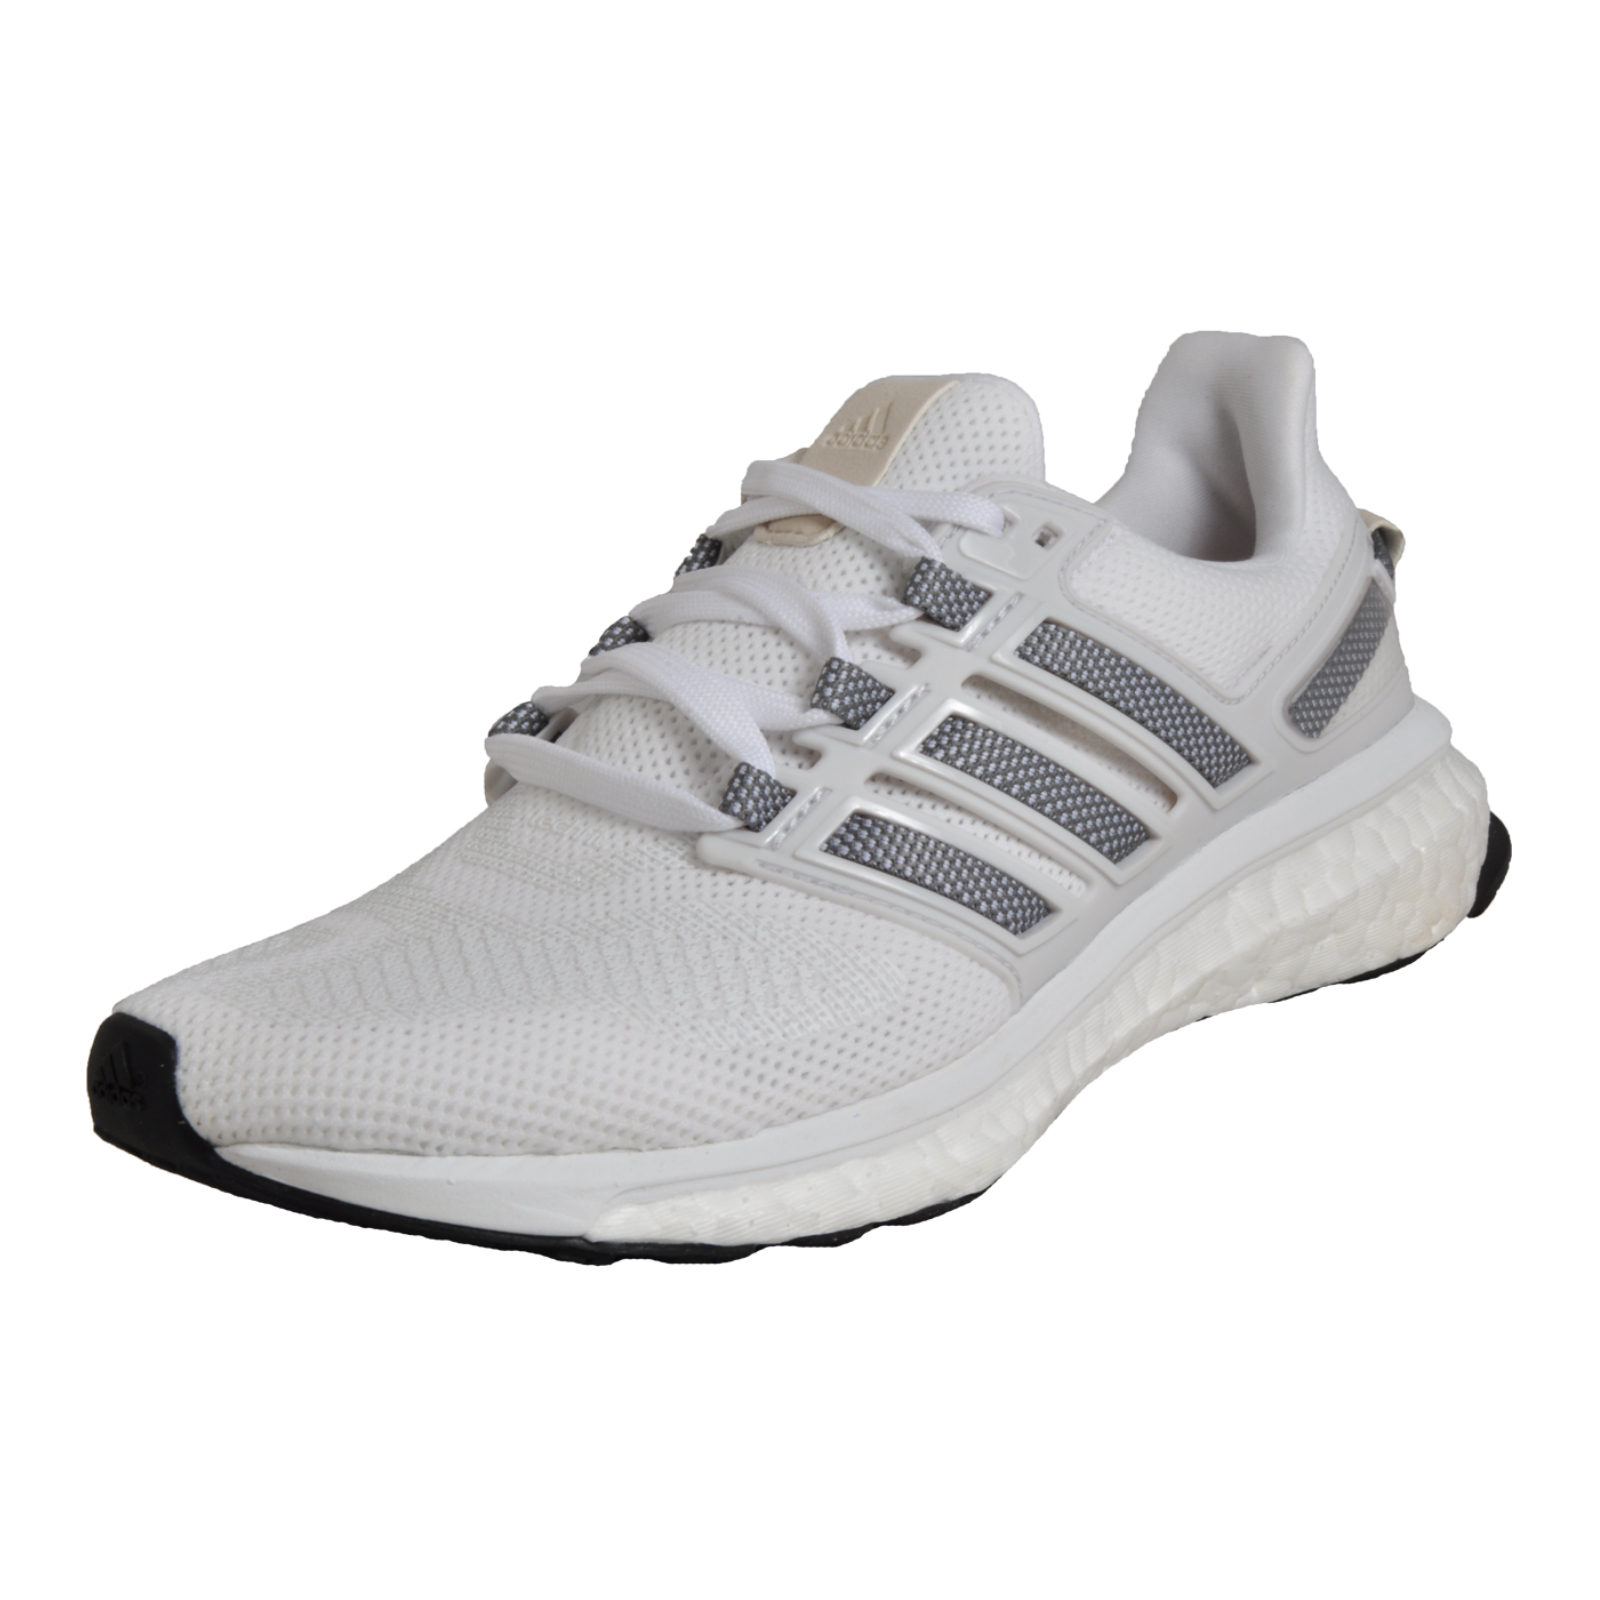 3a04027f18a4f Details about Adidas Energy Boost 3 Premium Women s Performance Running  Shoes White